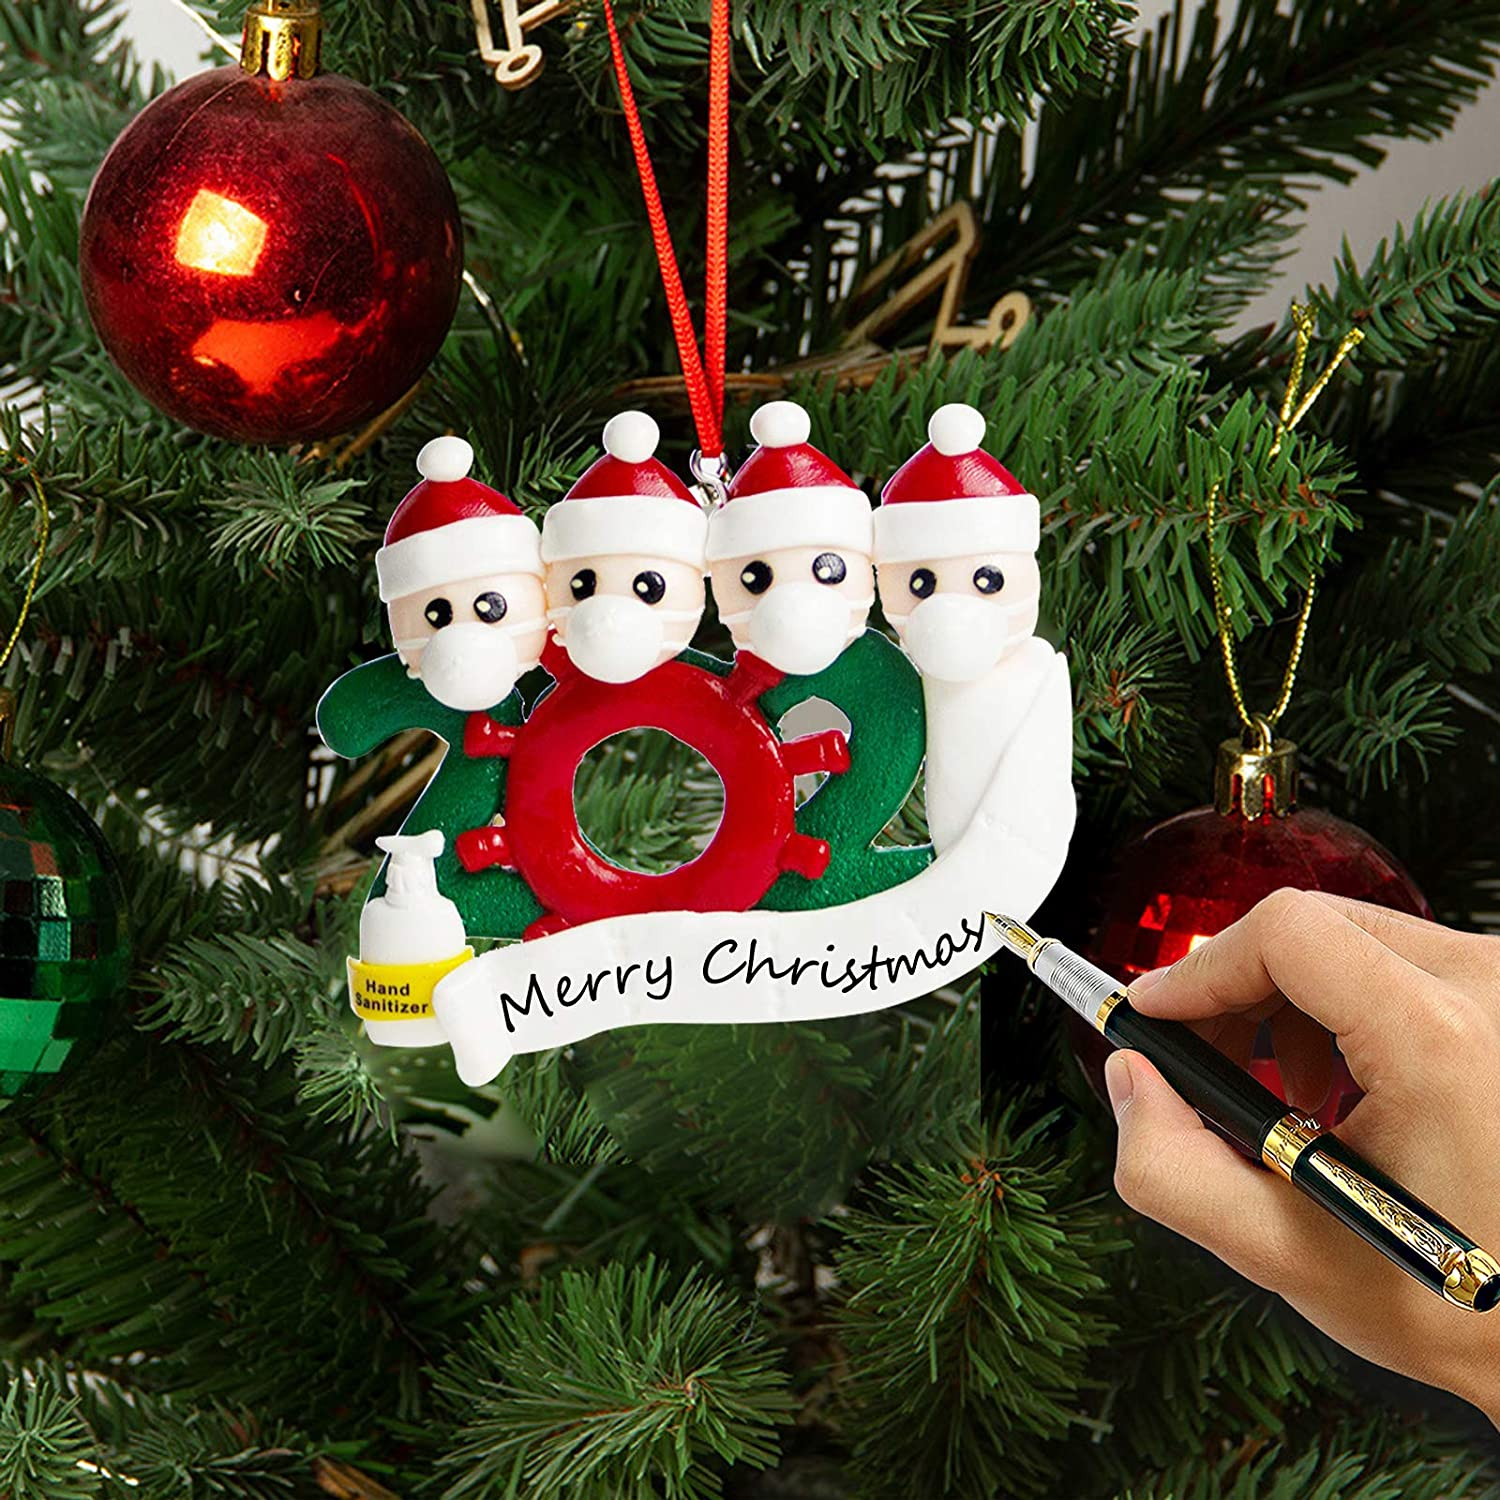 2 Person Christmas Ornaments 2020 Quarantine Survivor Family Ornaments Christmas Party DIY Xmas Decoration Gift Personalized Family Members